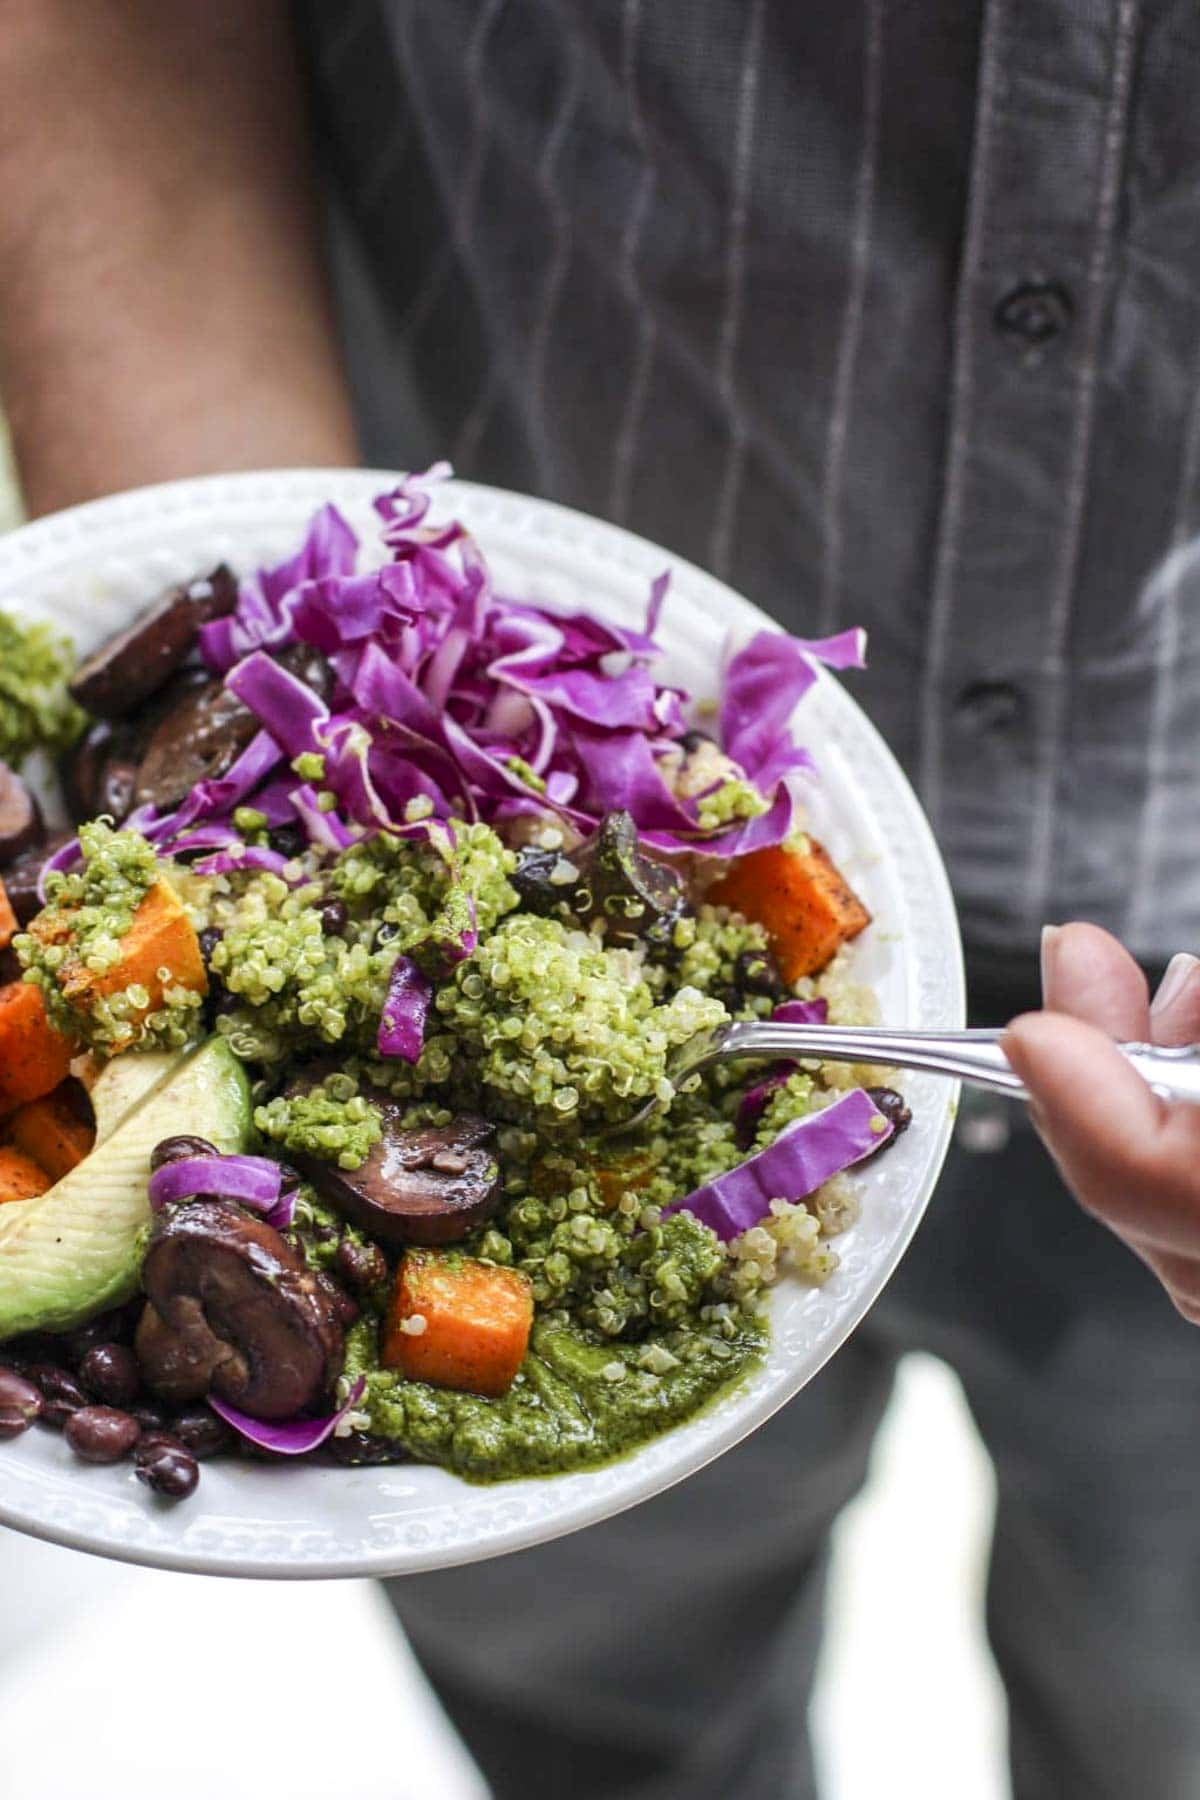 A pan holding a white bowl filled with vegetables, quinoa, and green pistachio sauce.